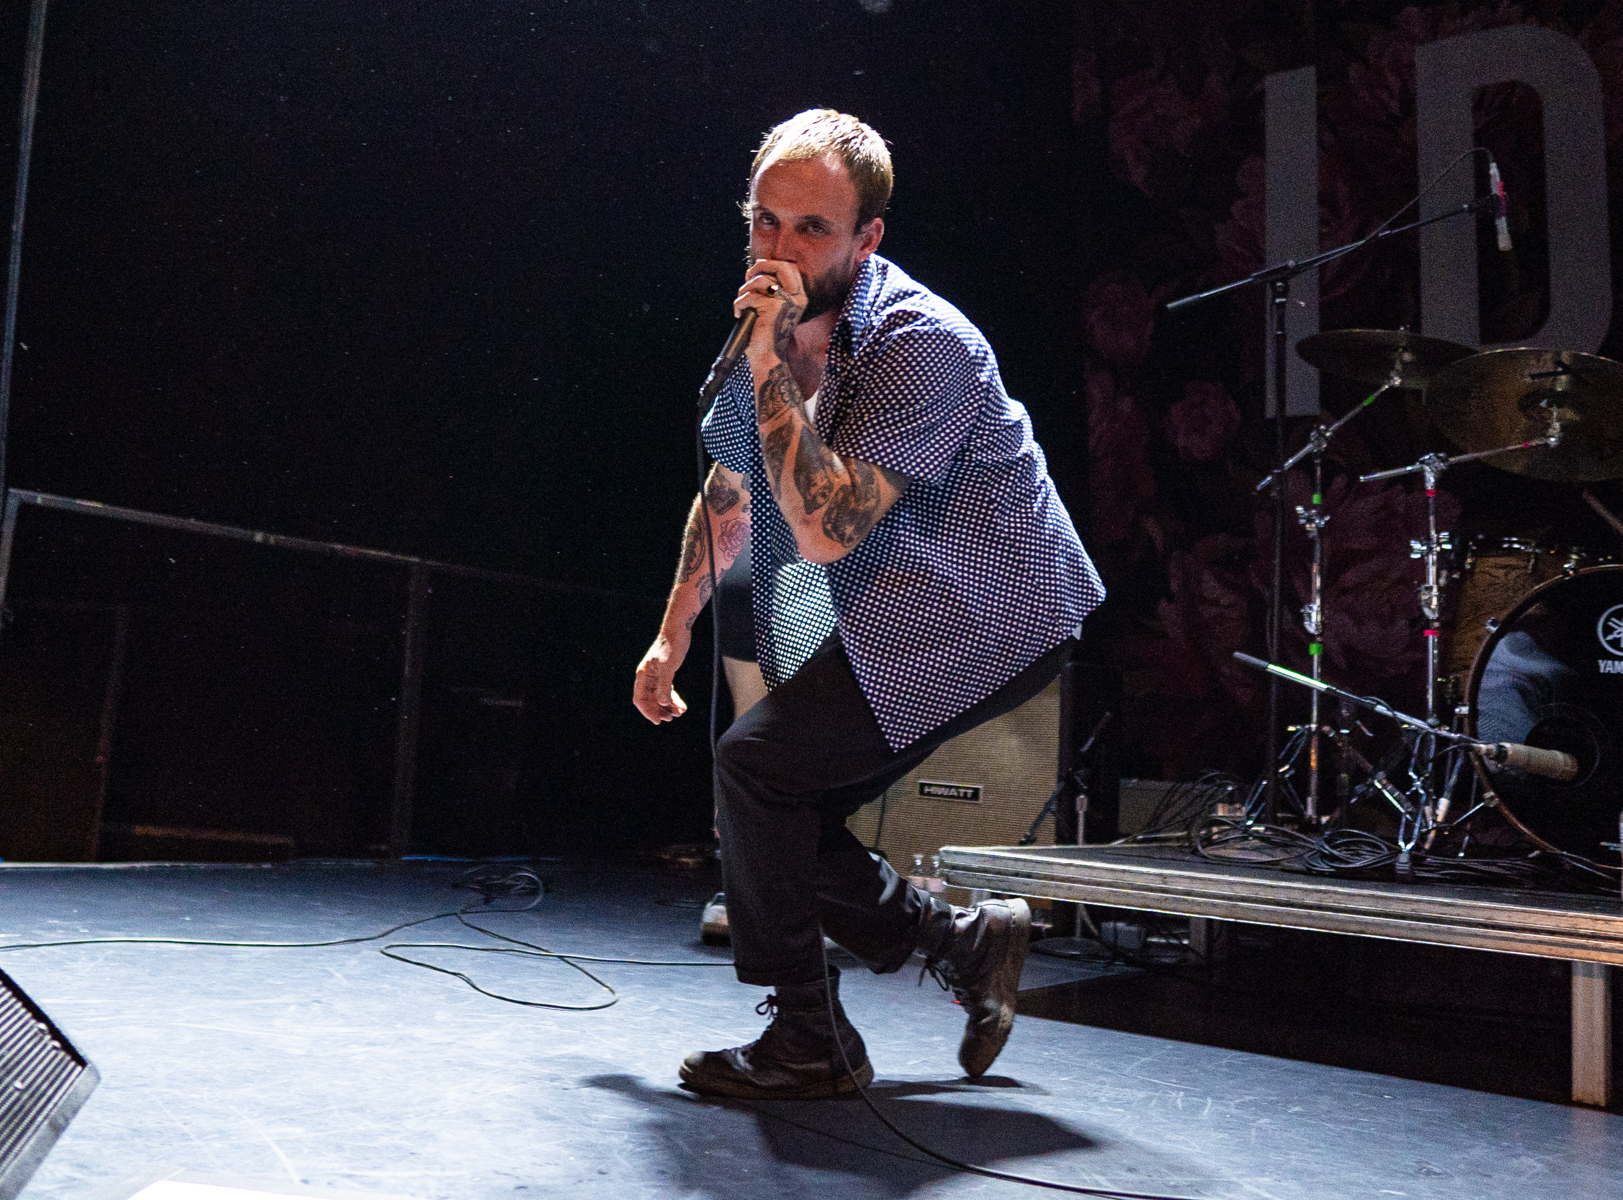 Idles_FirstAvenue_080319_Chris_Goyette_18